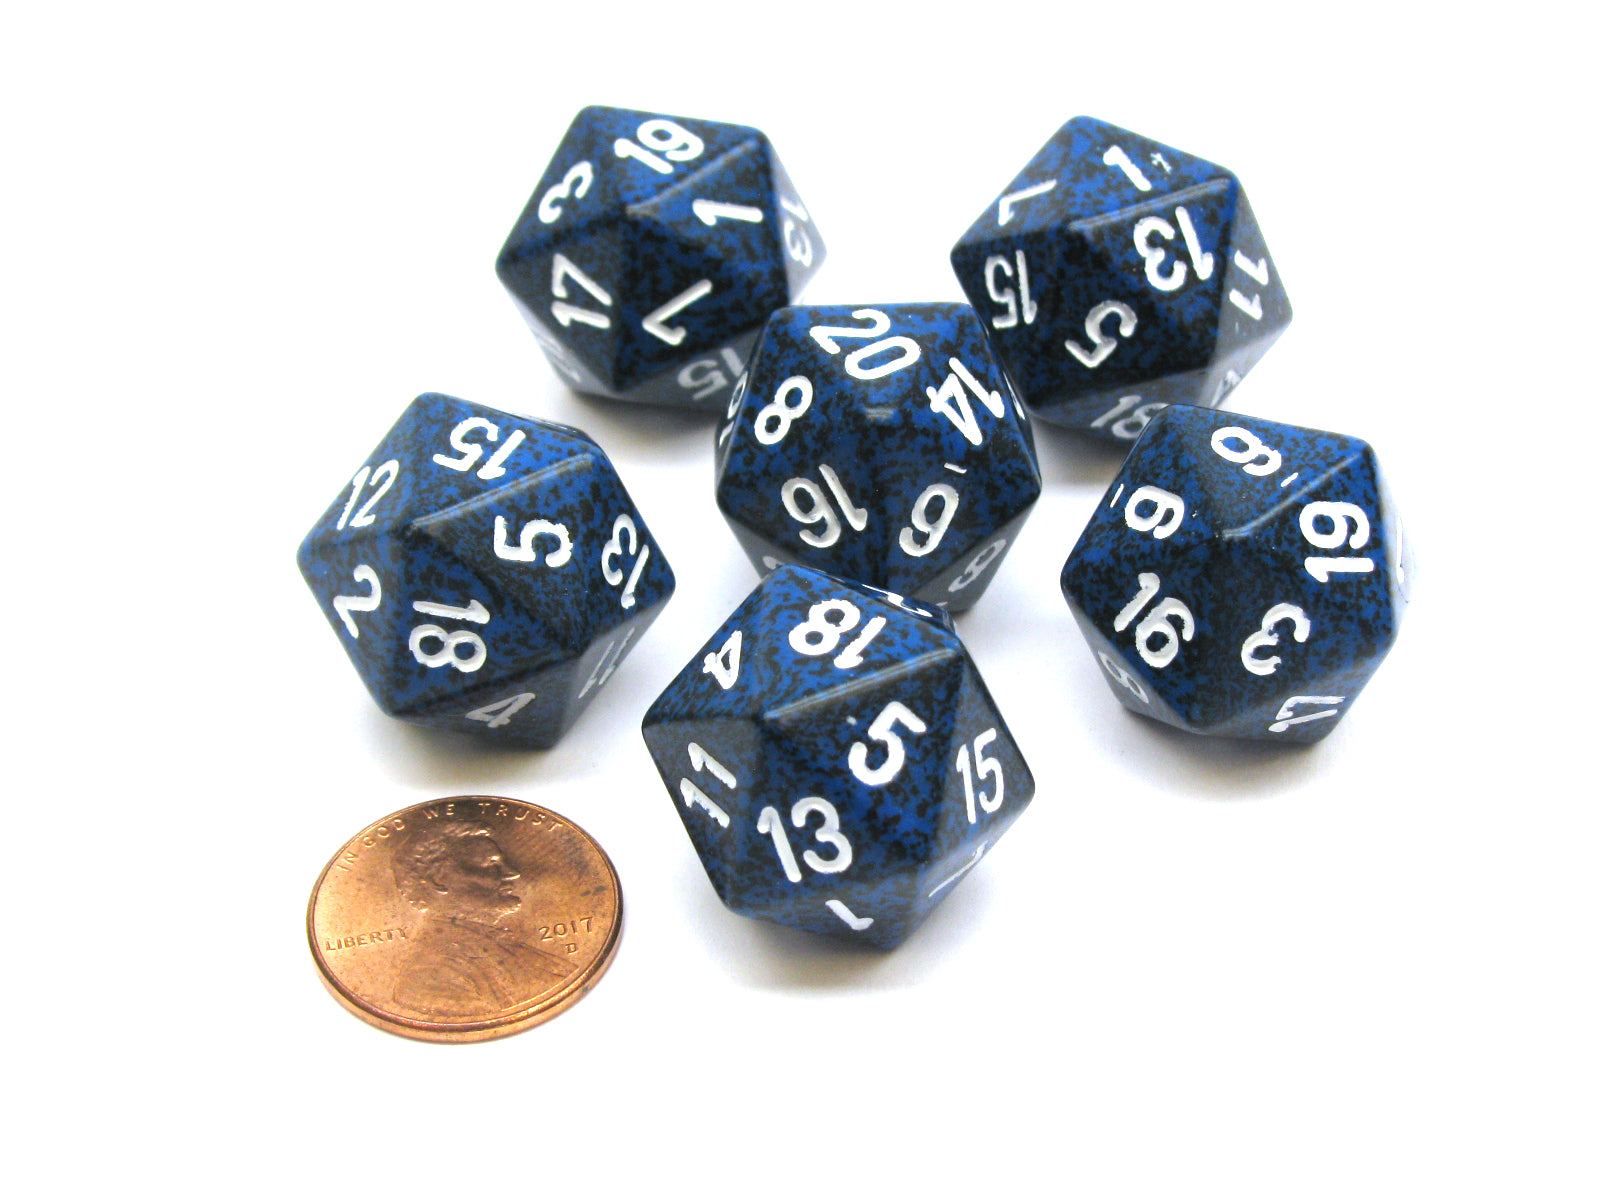 Speckled 20 Sided D20 Chessex Dice, 6 Pieces - Stealth